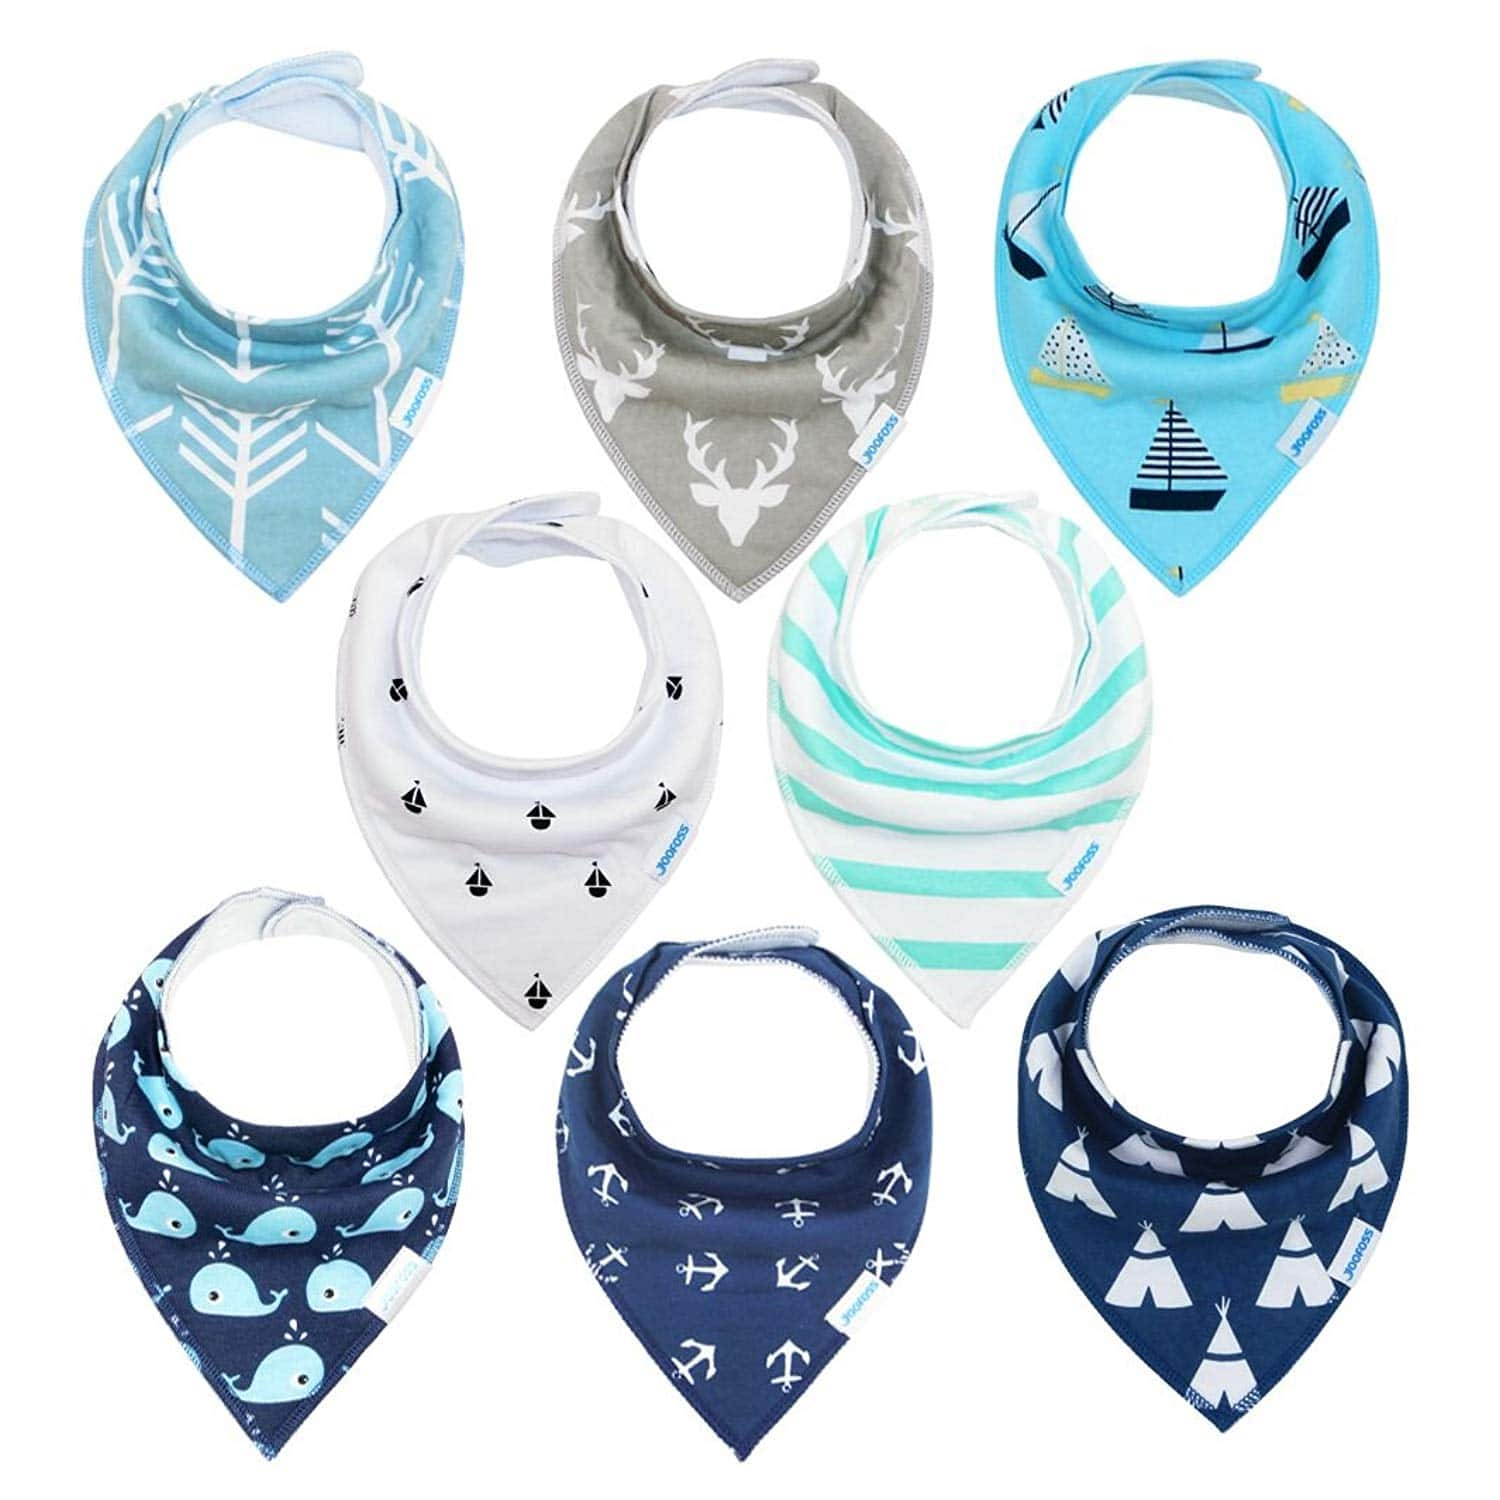 Baby bibs 8 Pack Soft and Absorbent for Boys & Girls - Baby Bandana Drool Bibs $11.99